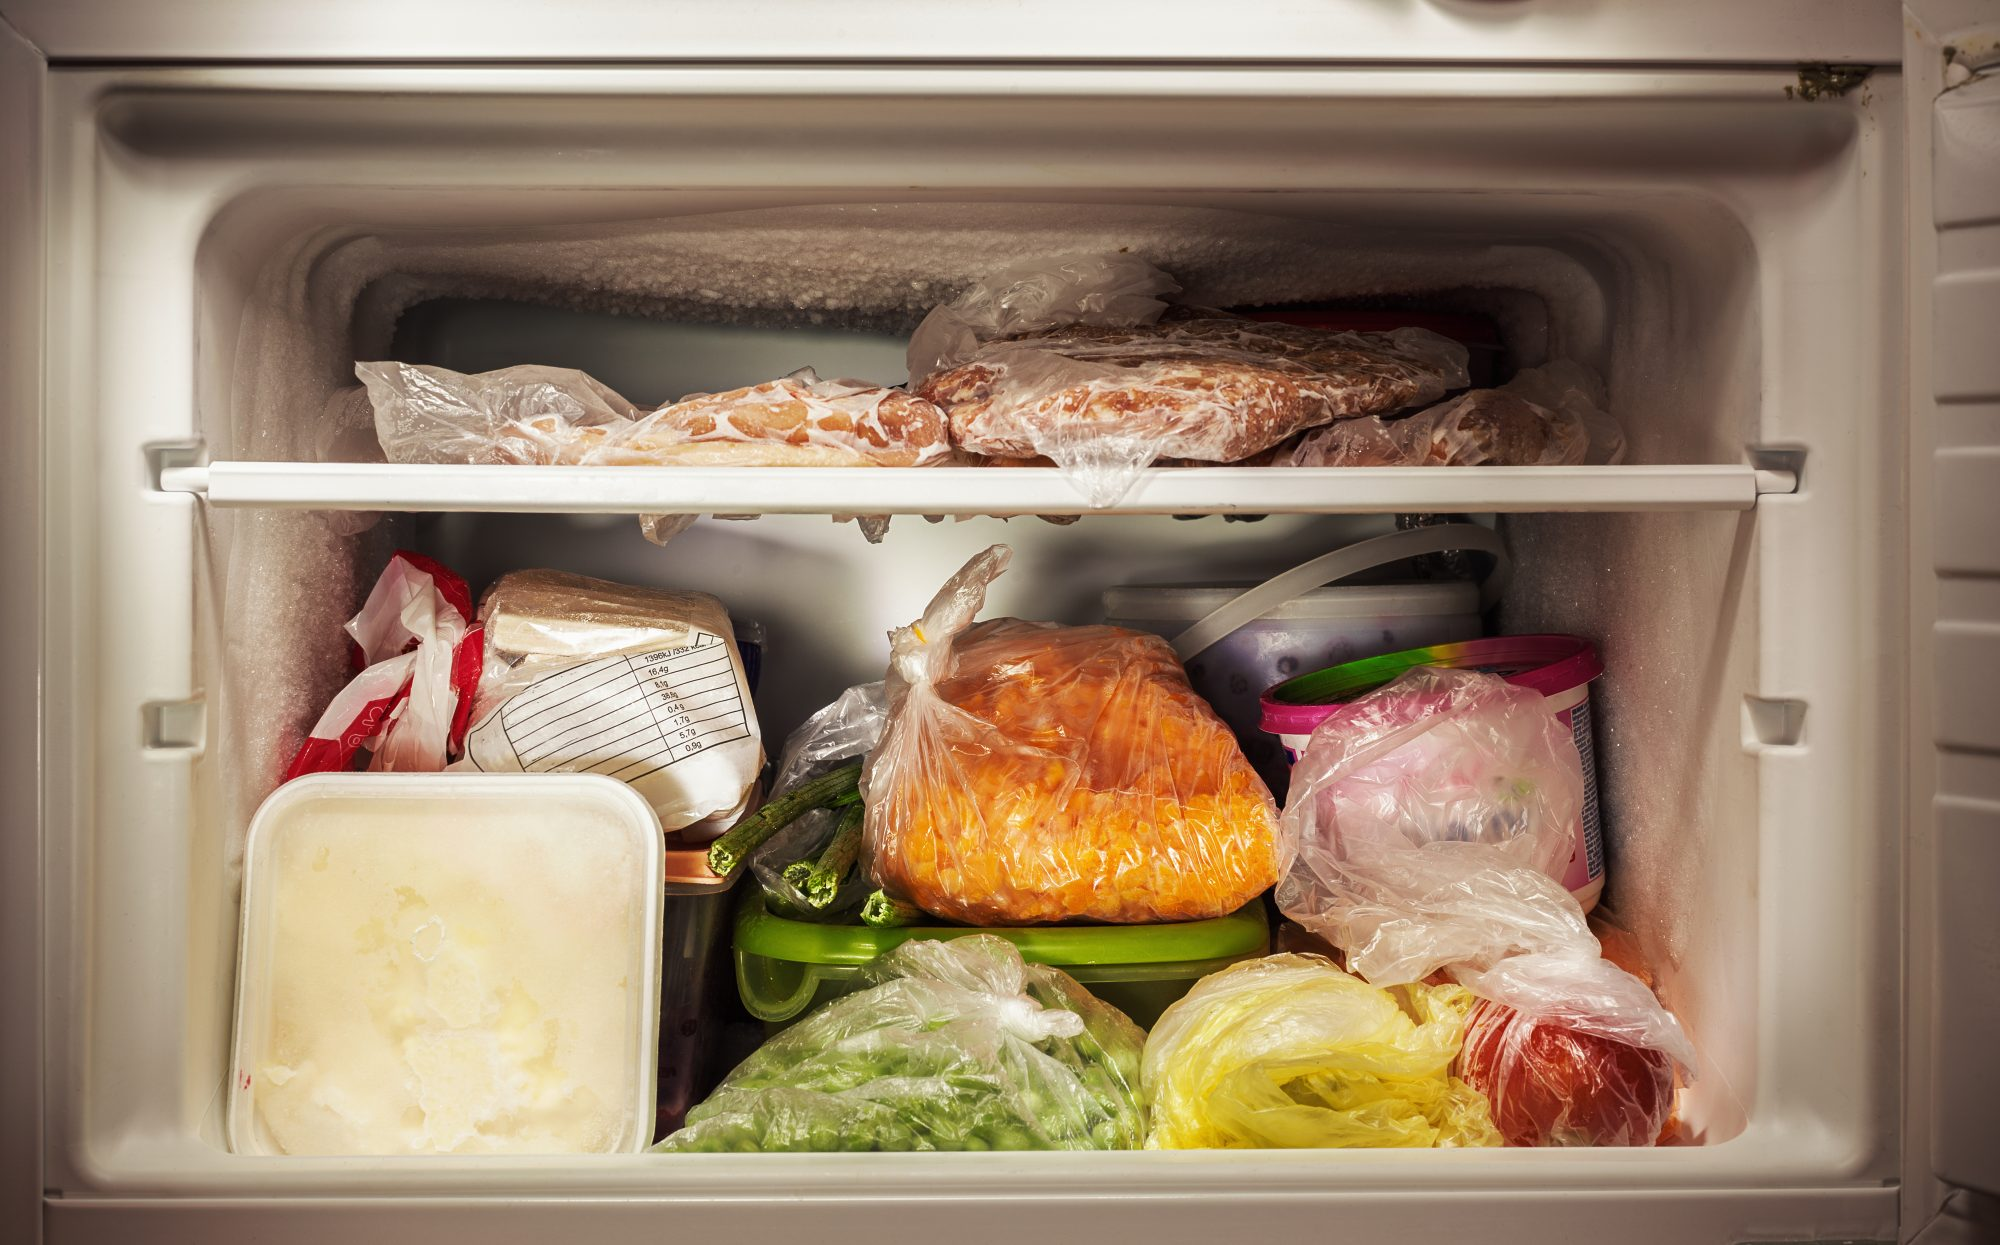 6 Basic Guidelines for Freezing Food That You Need to Know